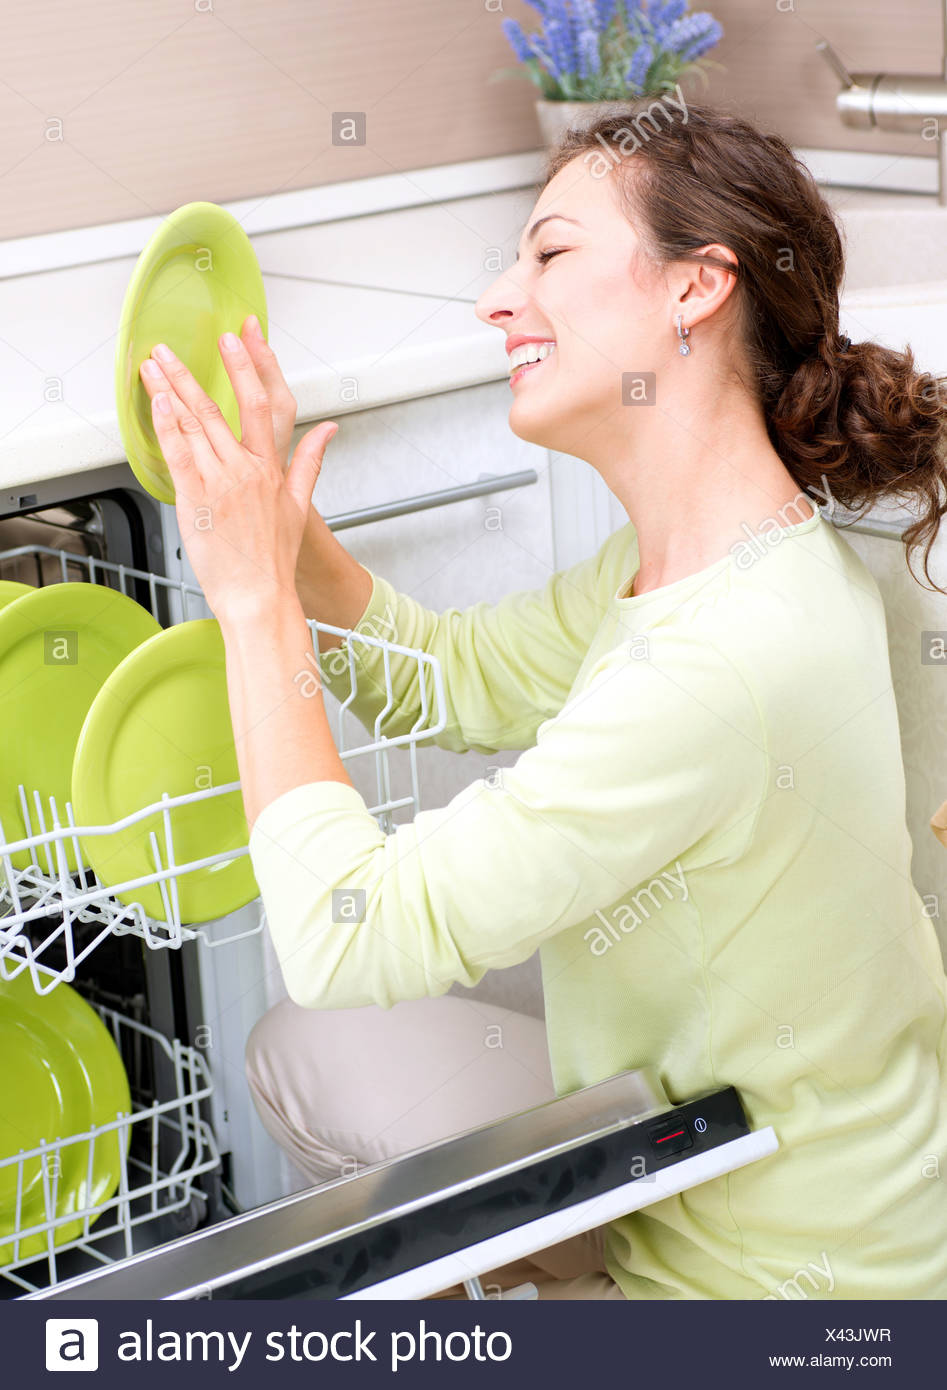 Dishwasher. Young woman in the Kitchen doing Housework. Wash-up - Stock Image